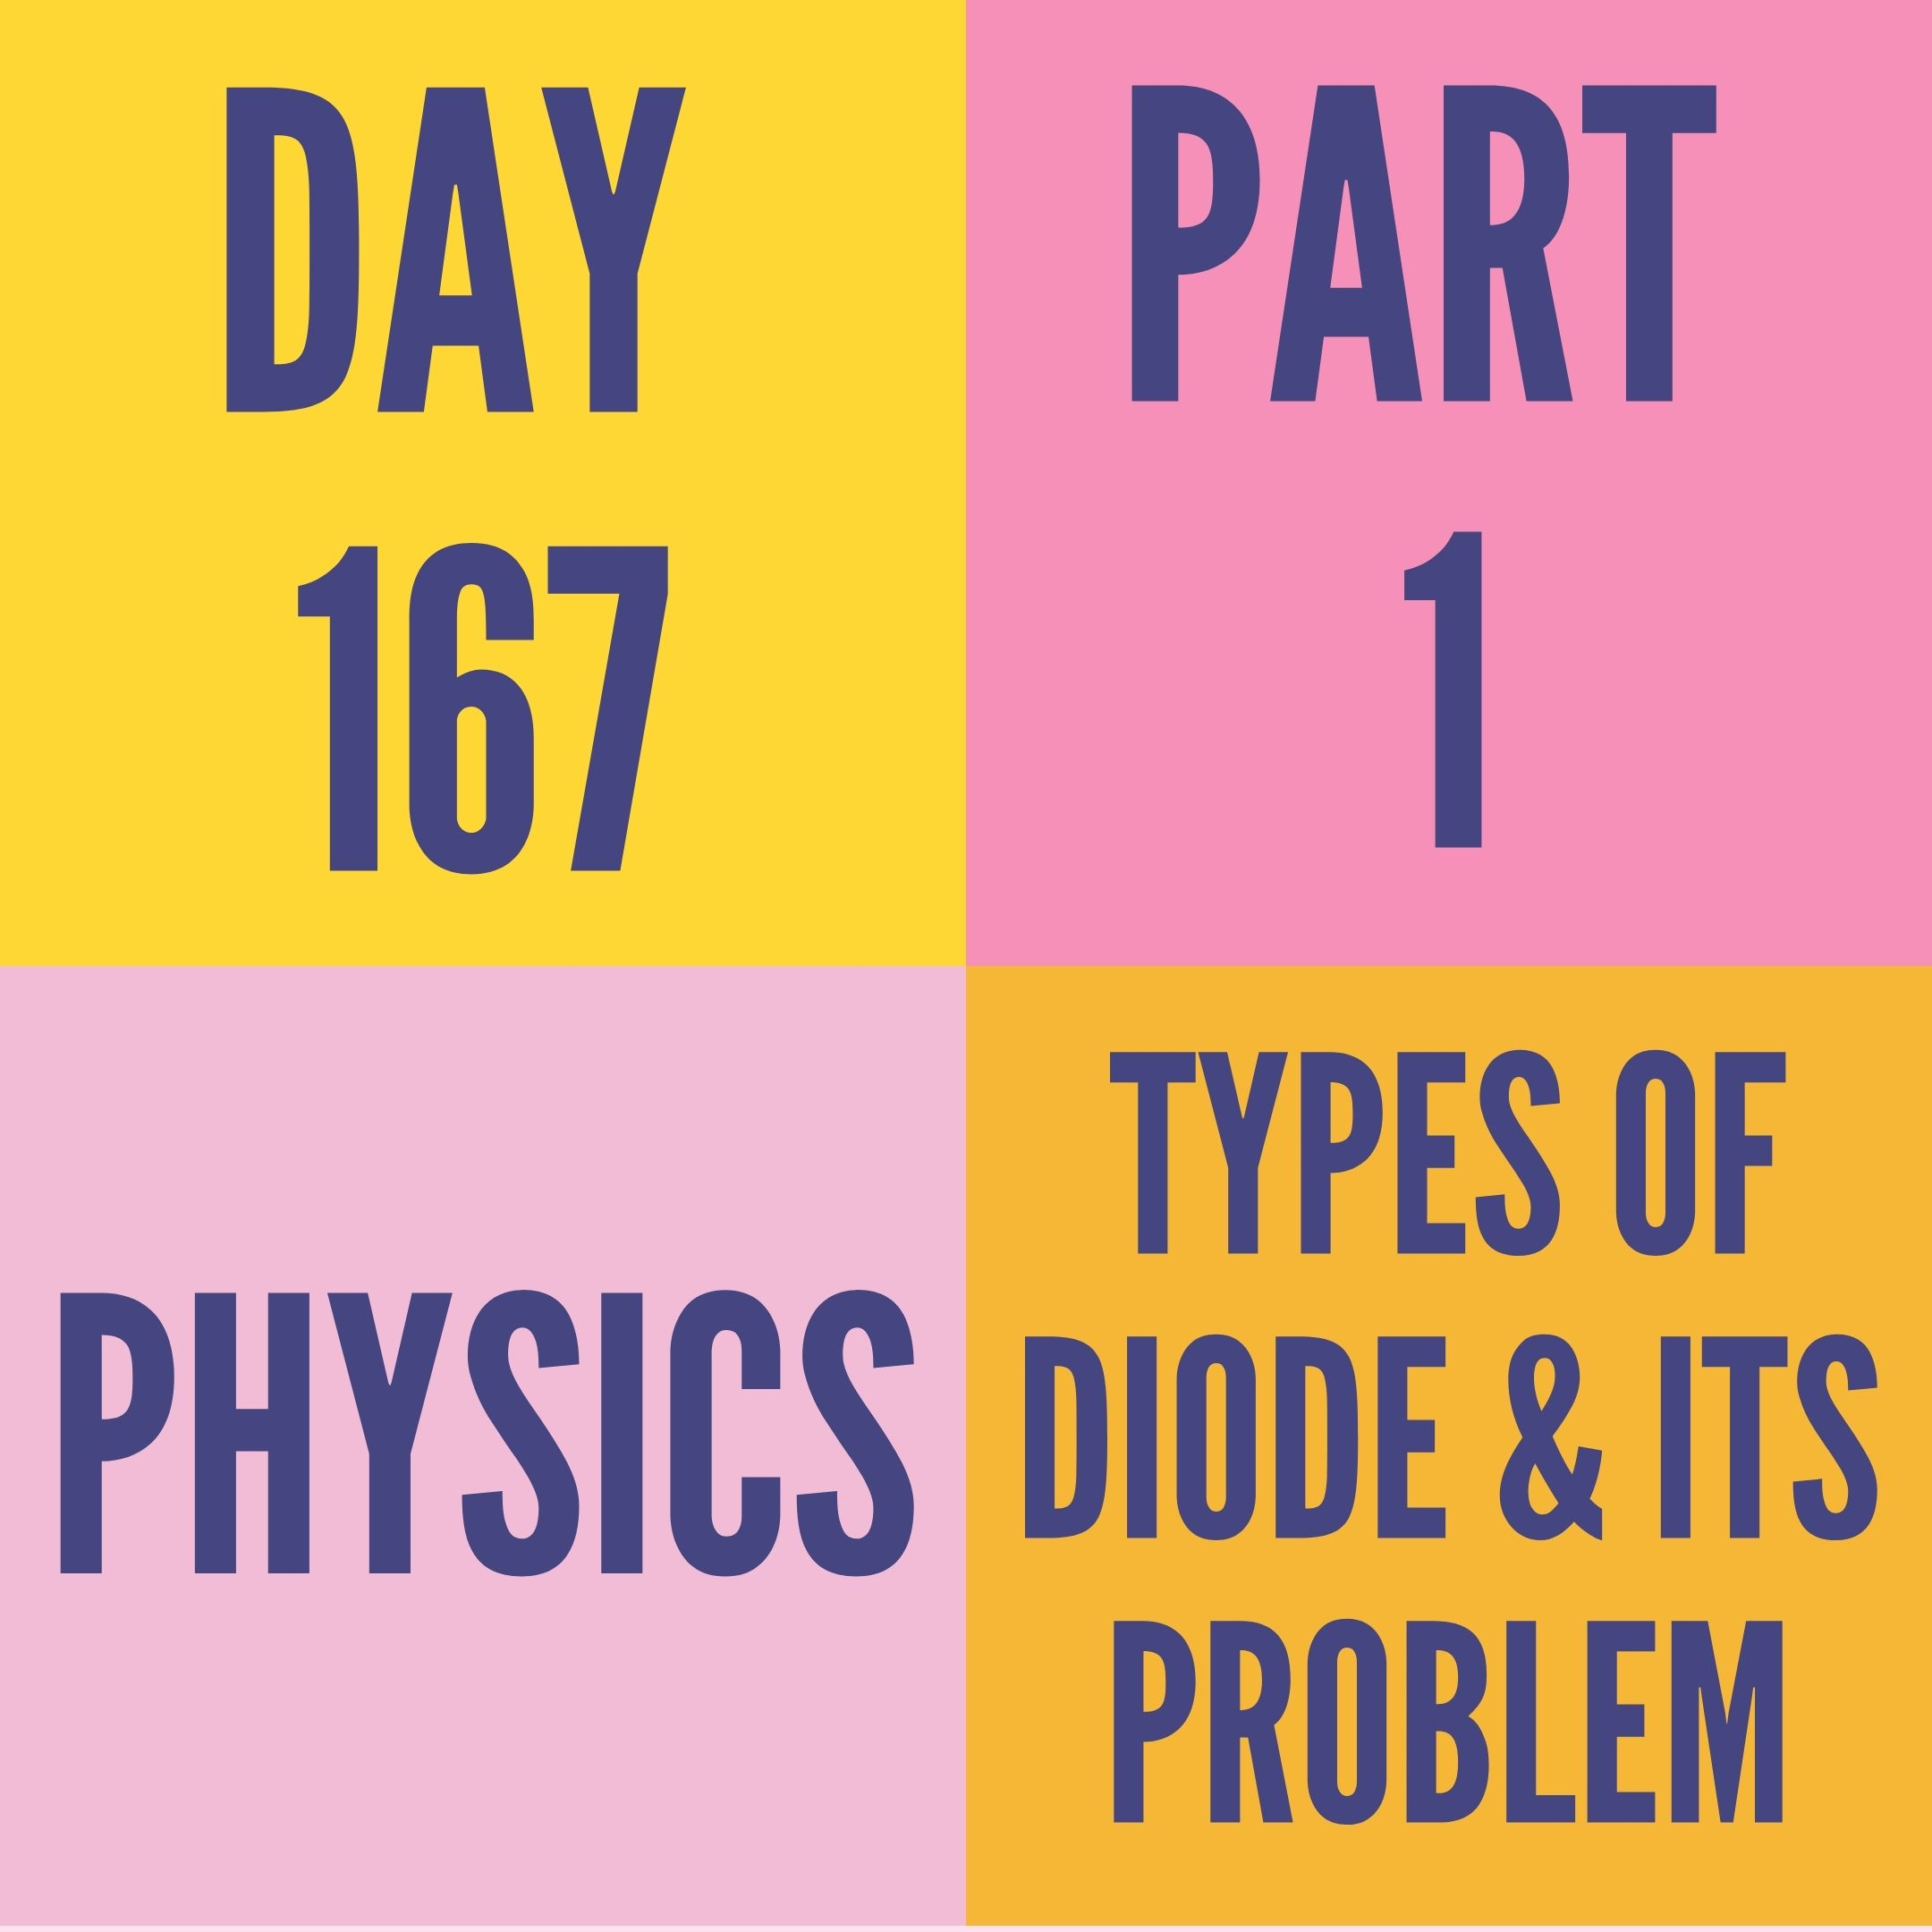 DAY-167 PART-1 TYPES OF DIODE & ITS PROBLEM